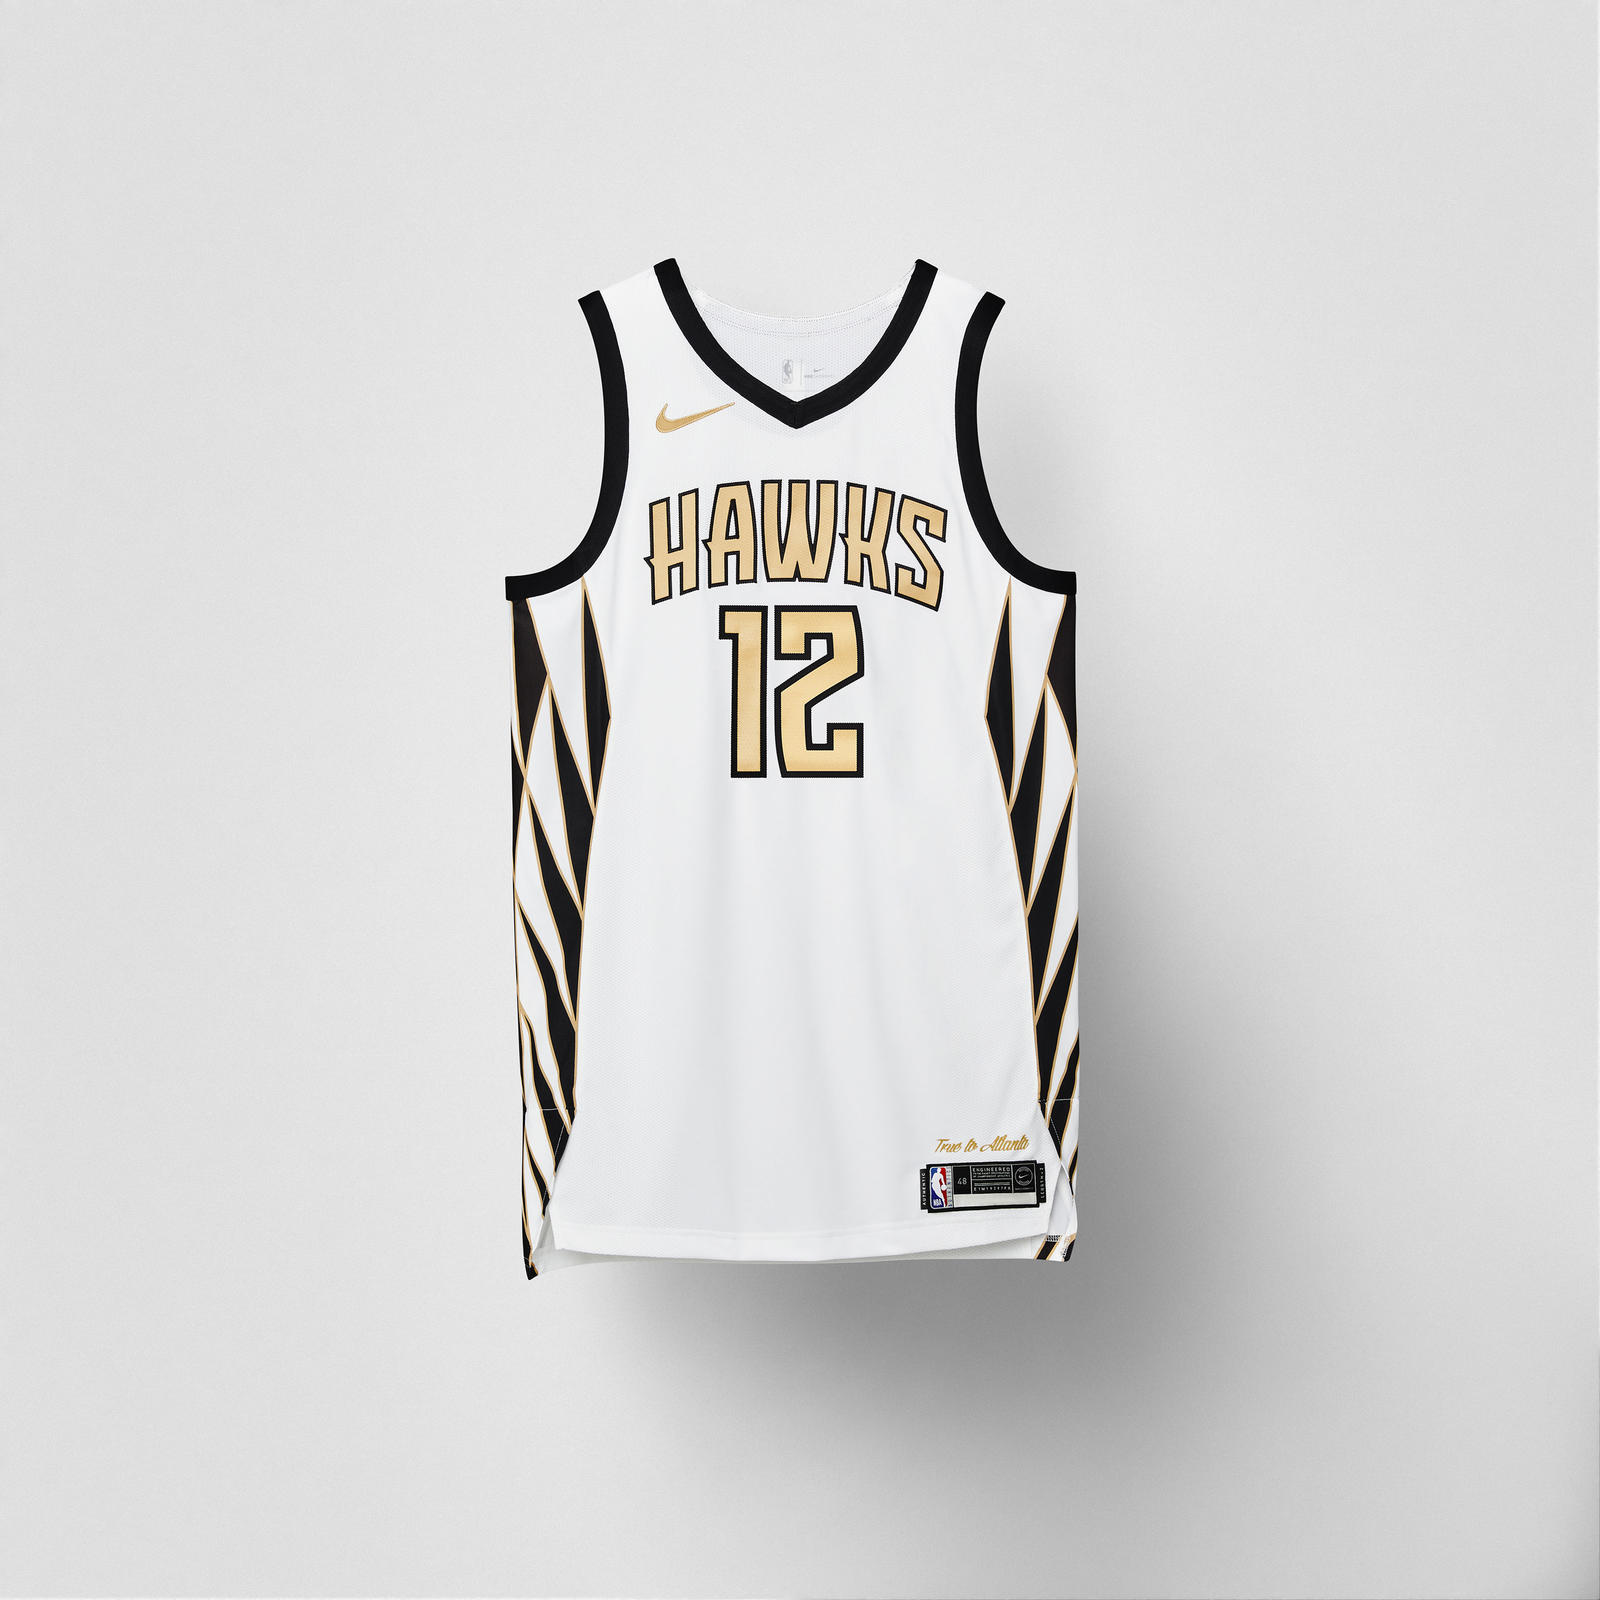 NBA City Edition Uniforms 2018-19 - Nike News 15c234999